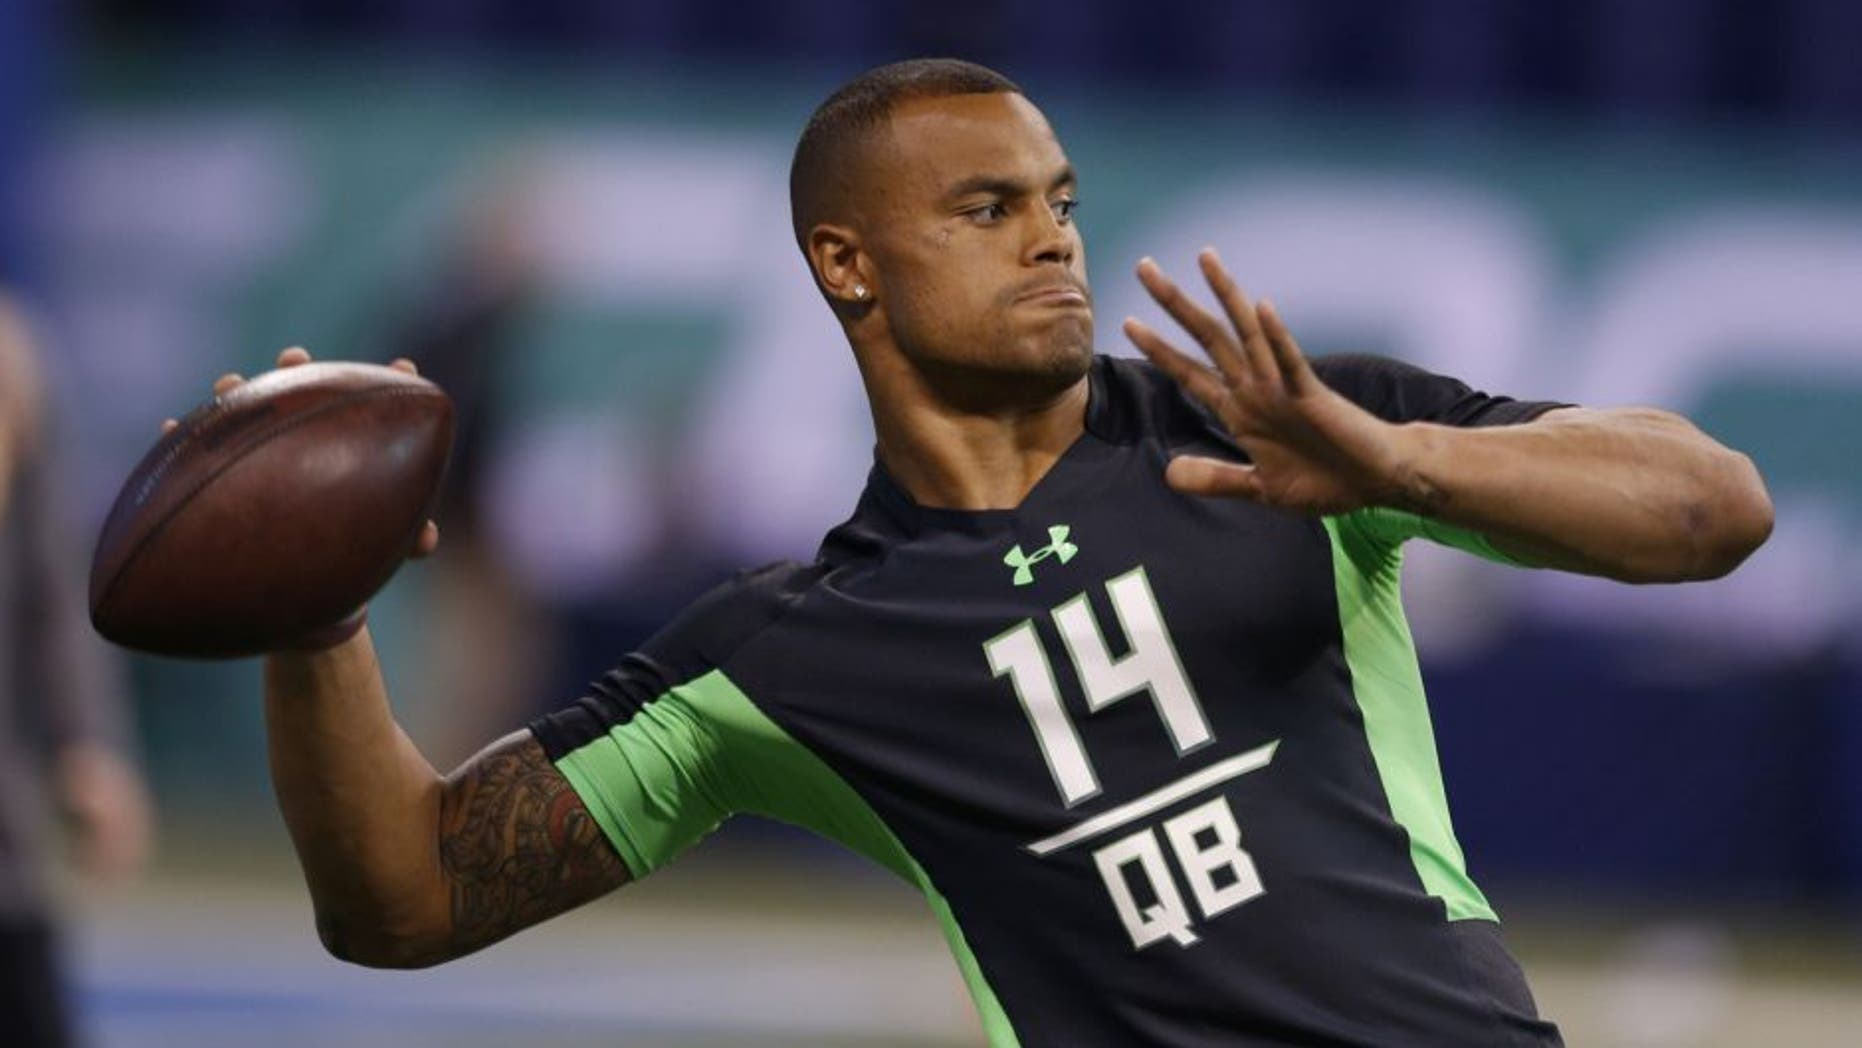 Mississippi State Bulldogs quarterback Dak Prescott throws a pass during the 2016 NFL Scouting Combine at Lucas Oil Stadium. Mandatory Credit: Brian Spurlock-USA TODAY Sports